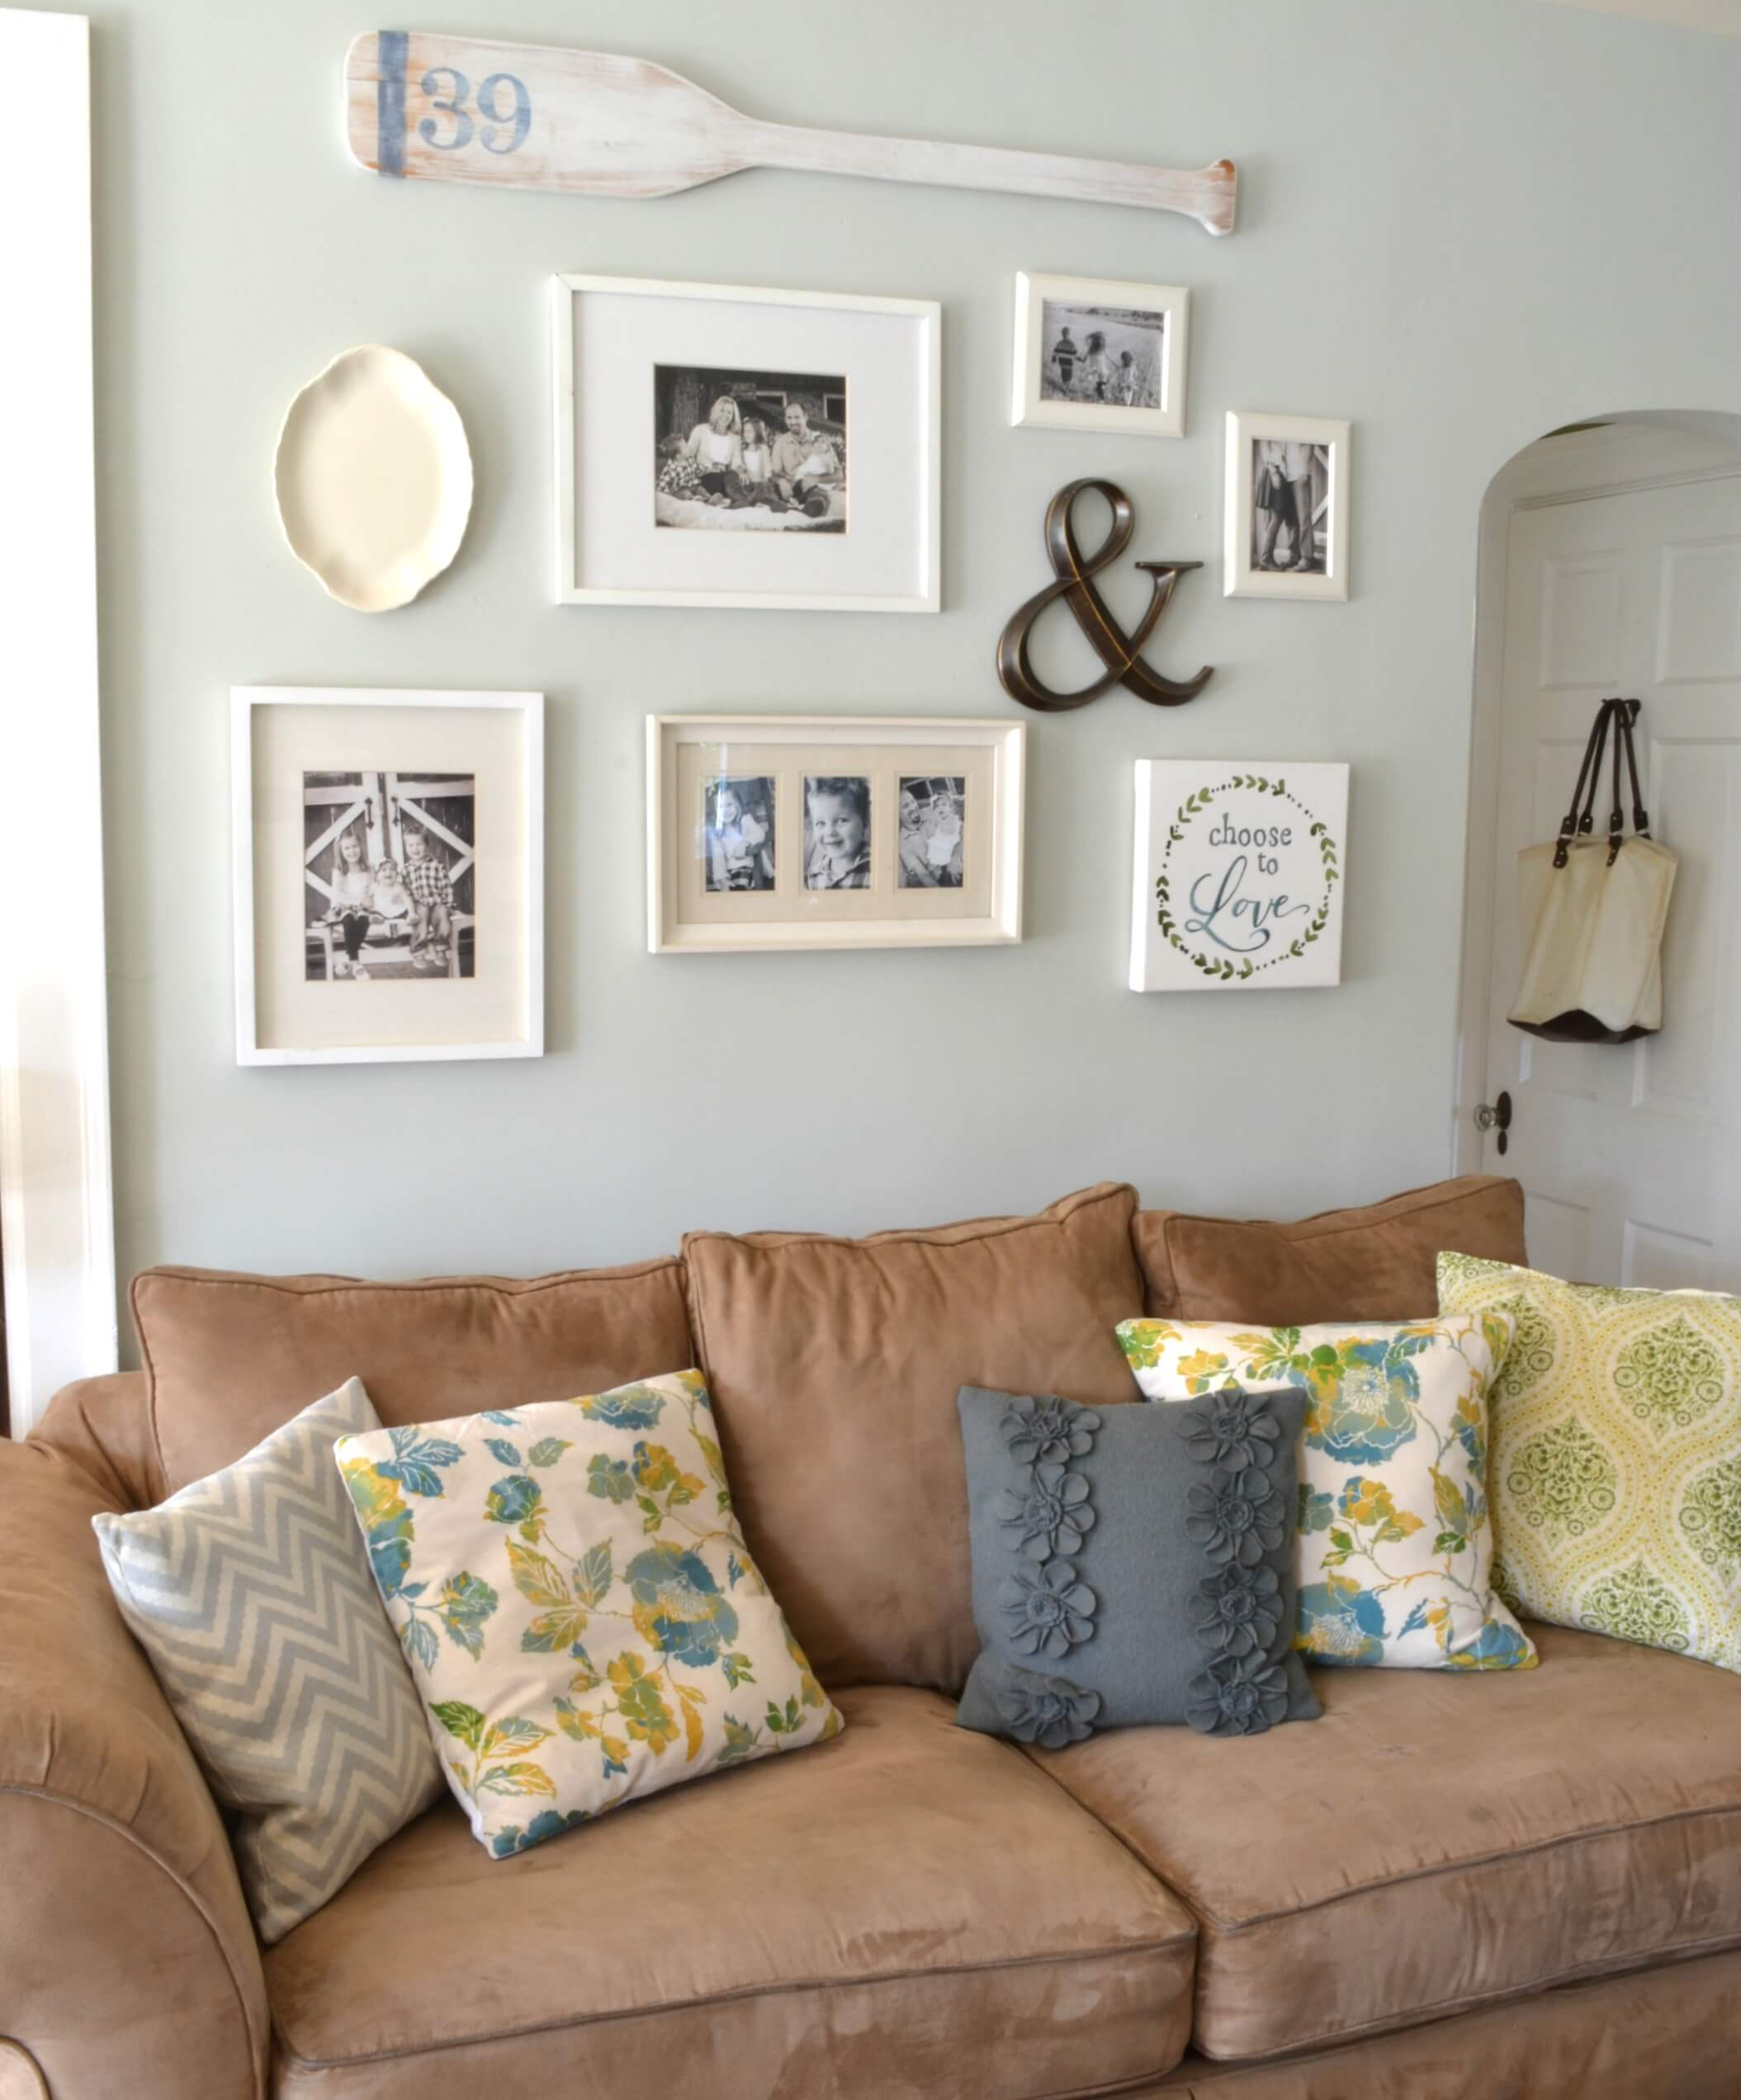 Wall Decorating Ideas: 20 Lovely Decor Ideas For Adding Impact Above The Sofa